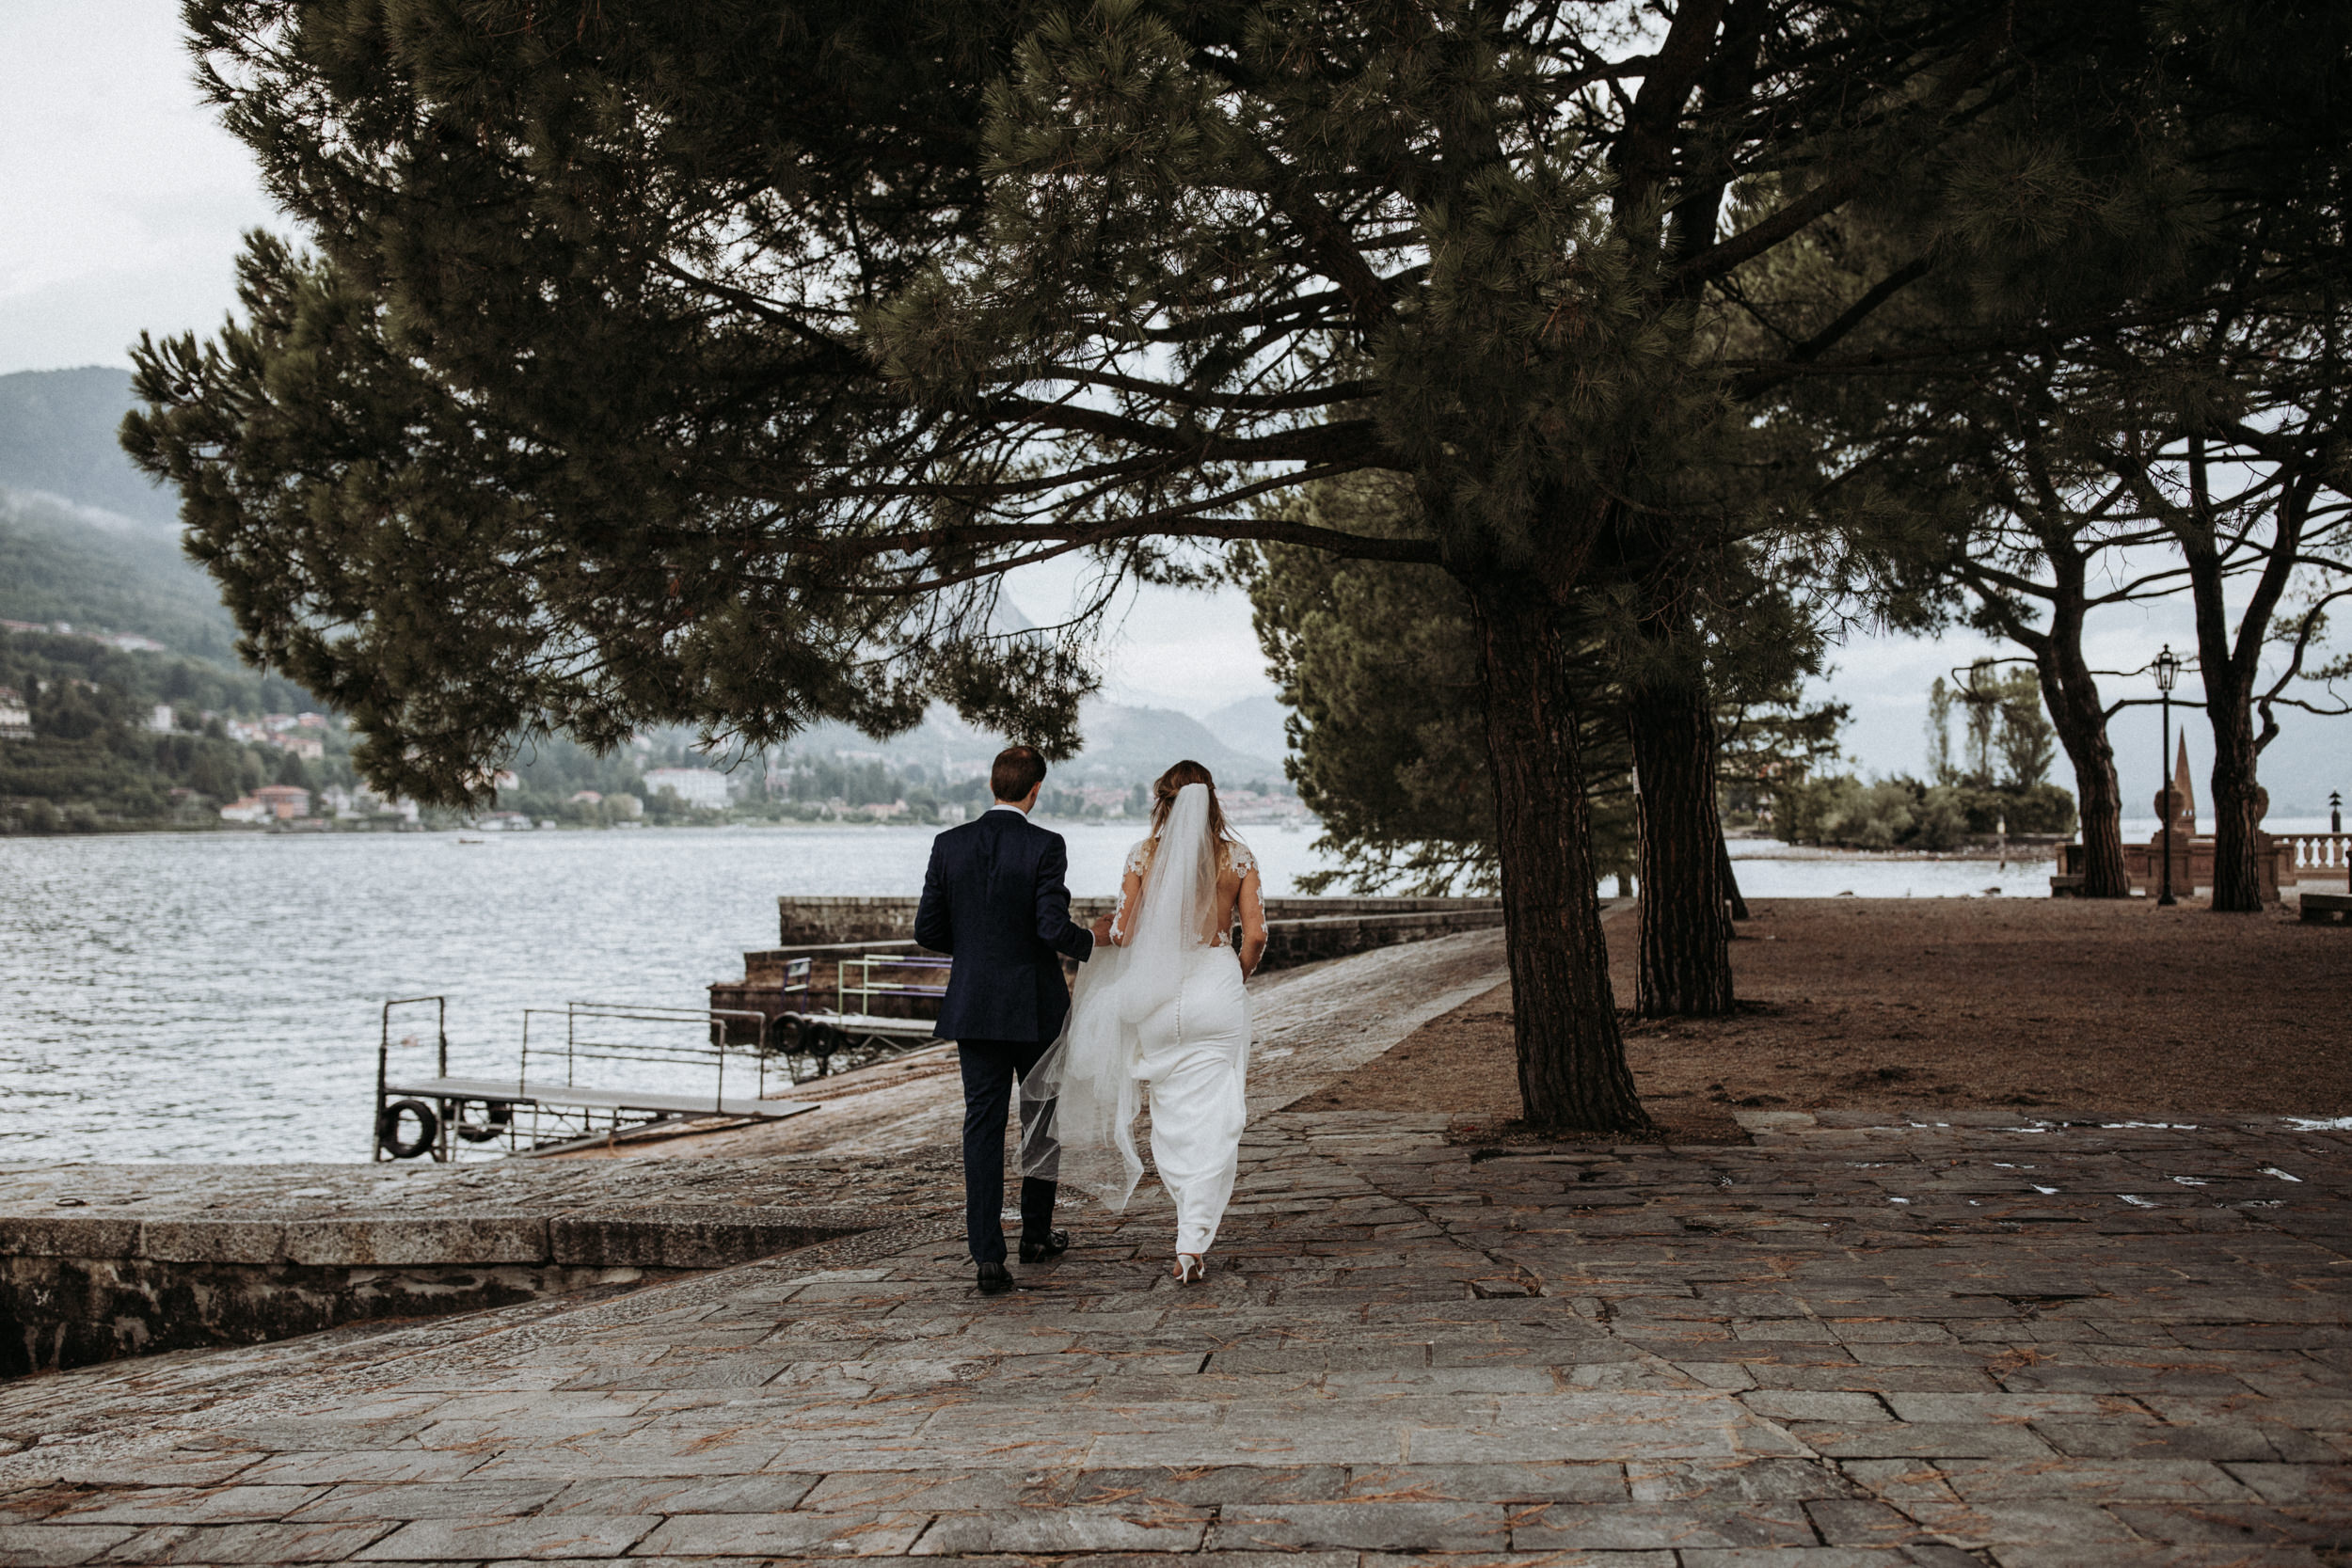 dm_photography_Lago Maggiore_Wed_243